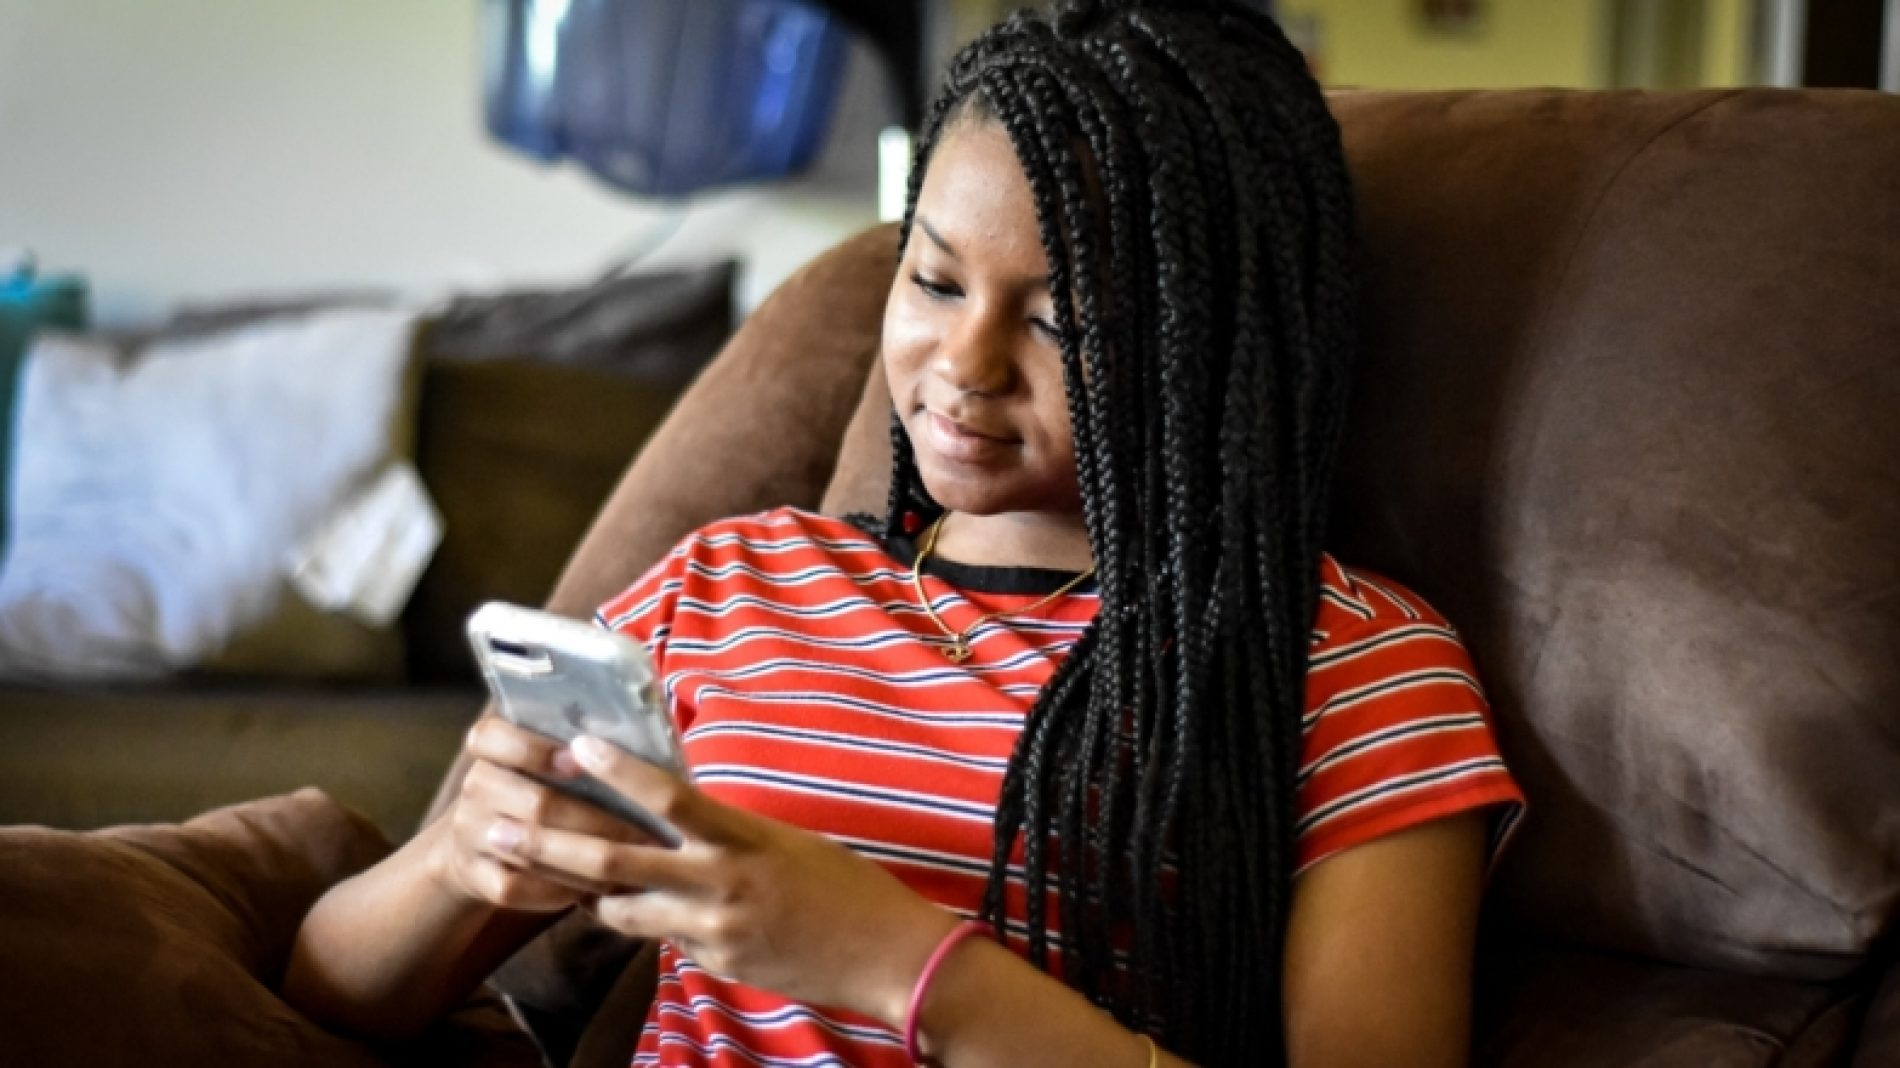 african-american-girl-looking-at-her-cell-phone_t20_1nwdlx